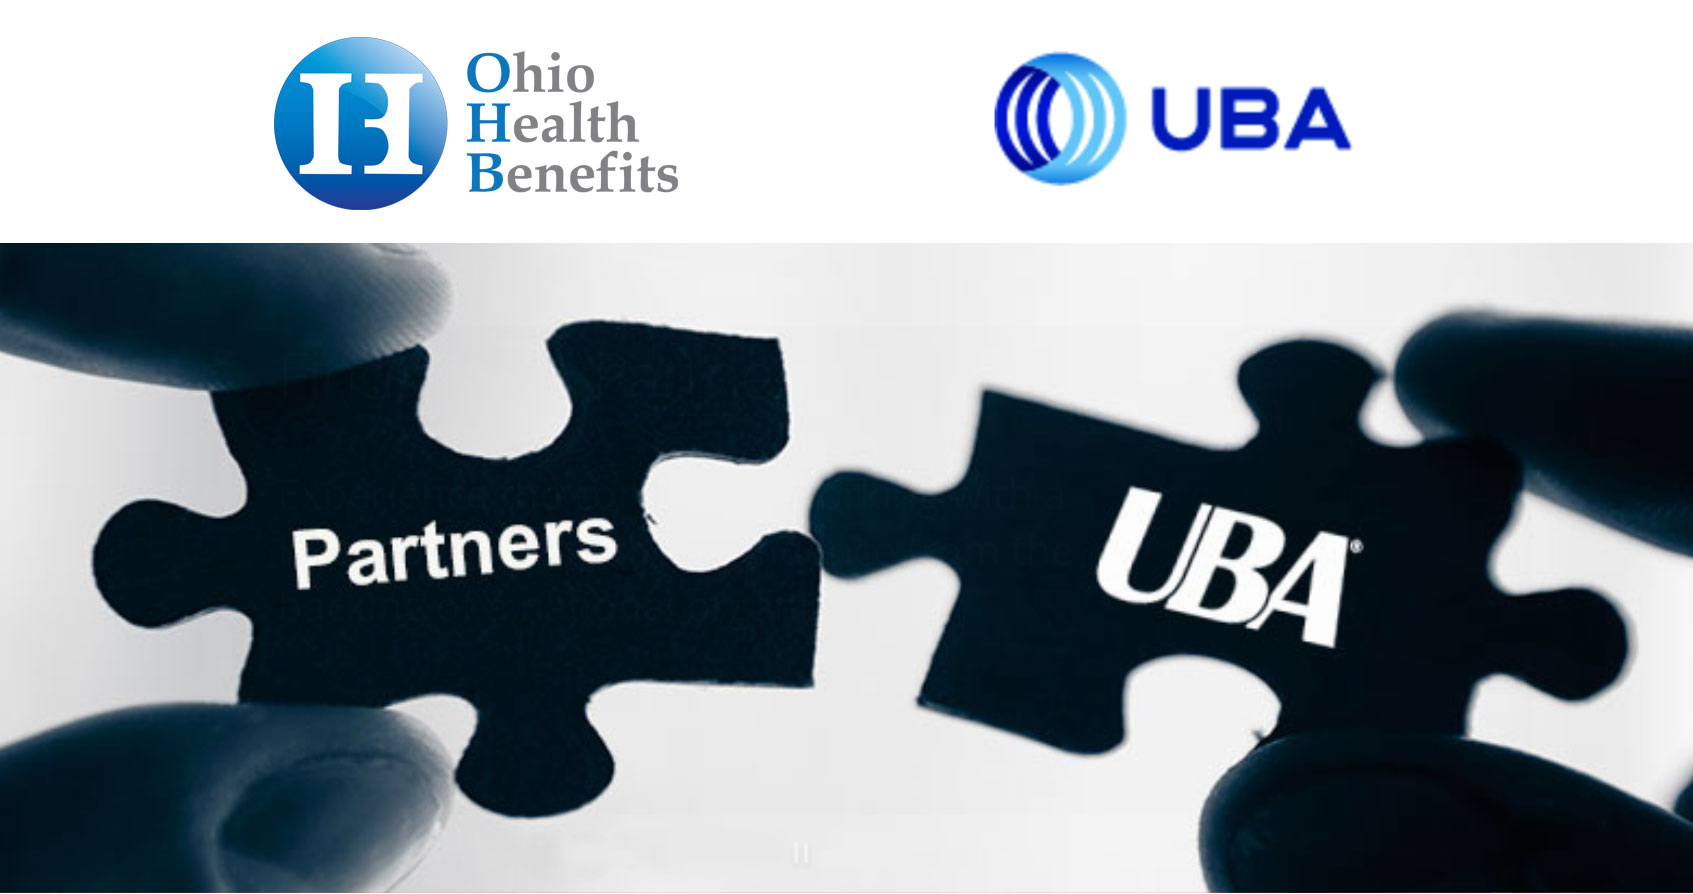 OHB and UBA partner together and image shows puzzle pieces